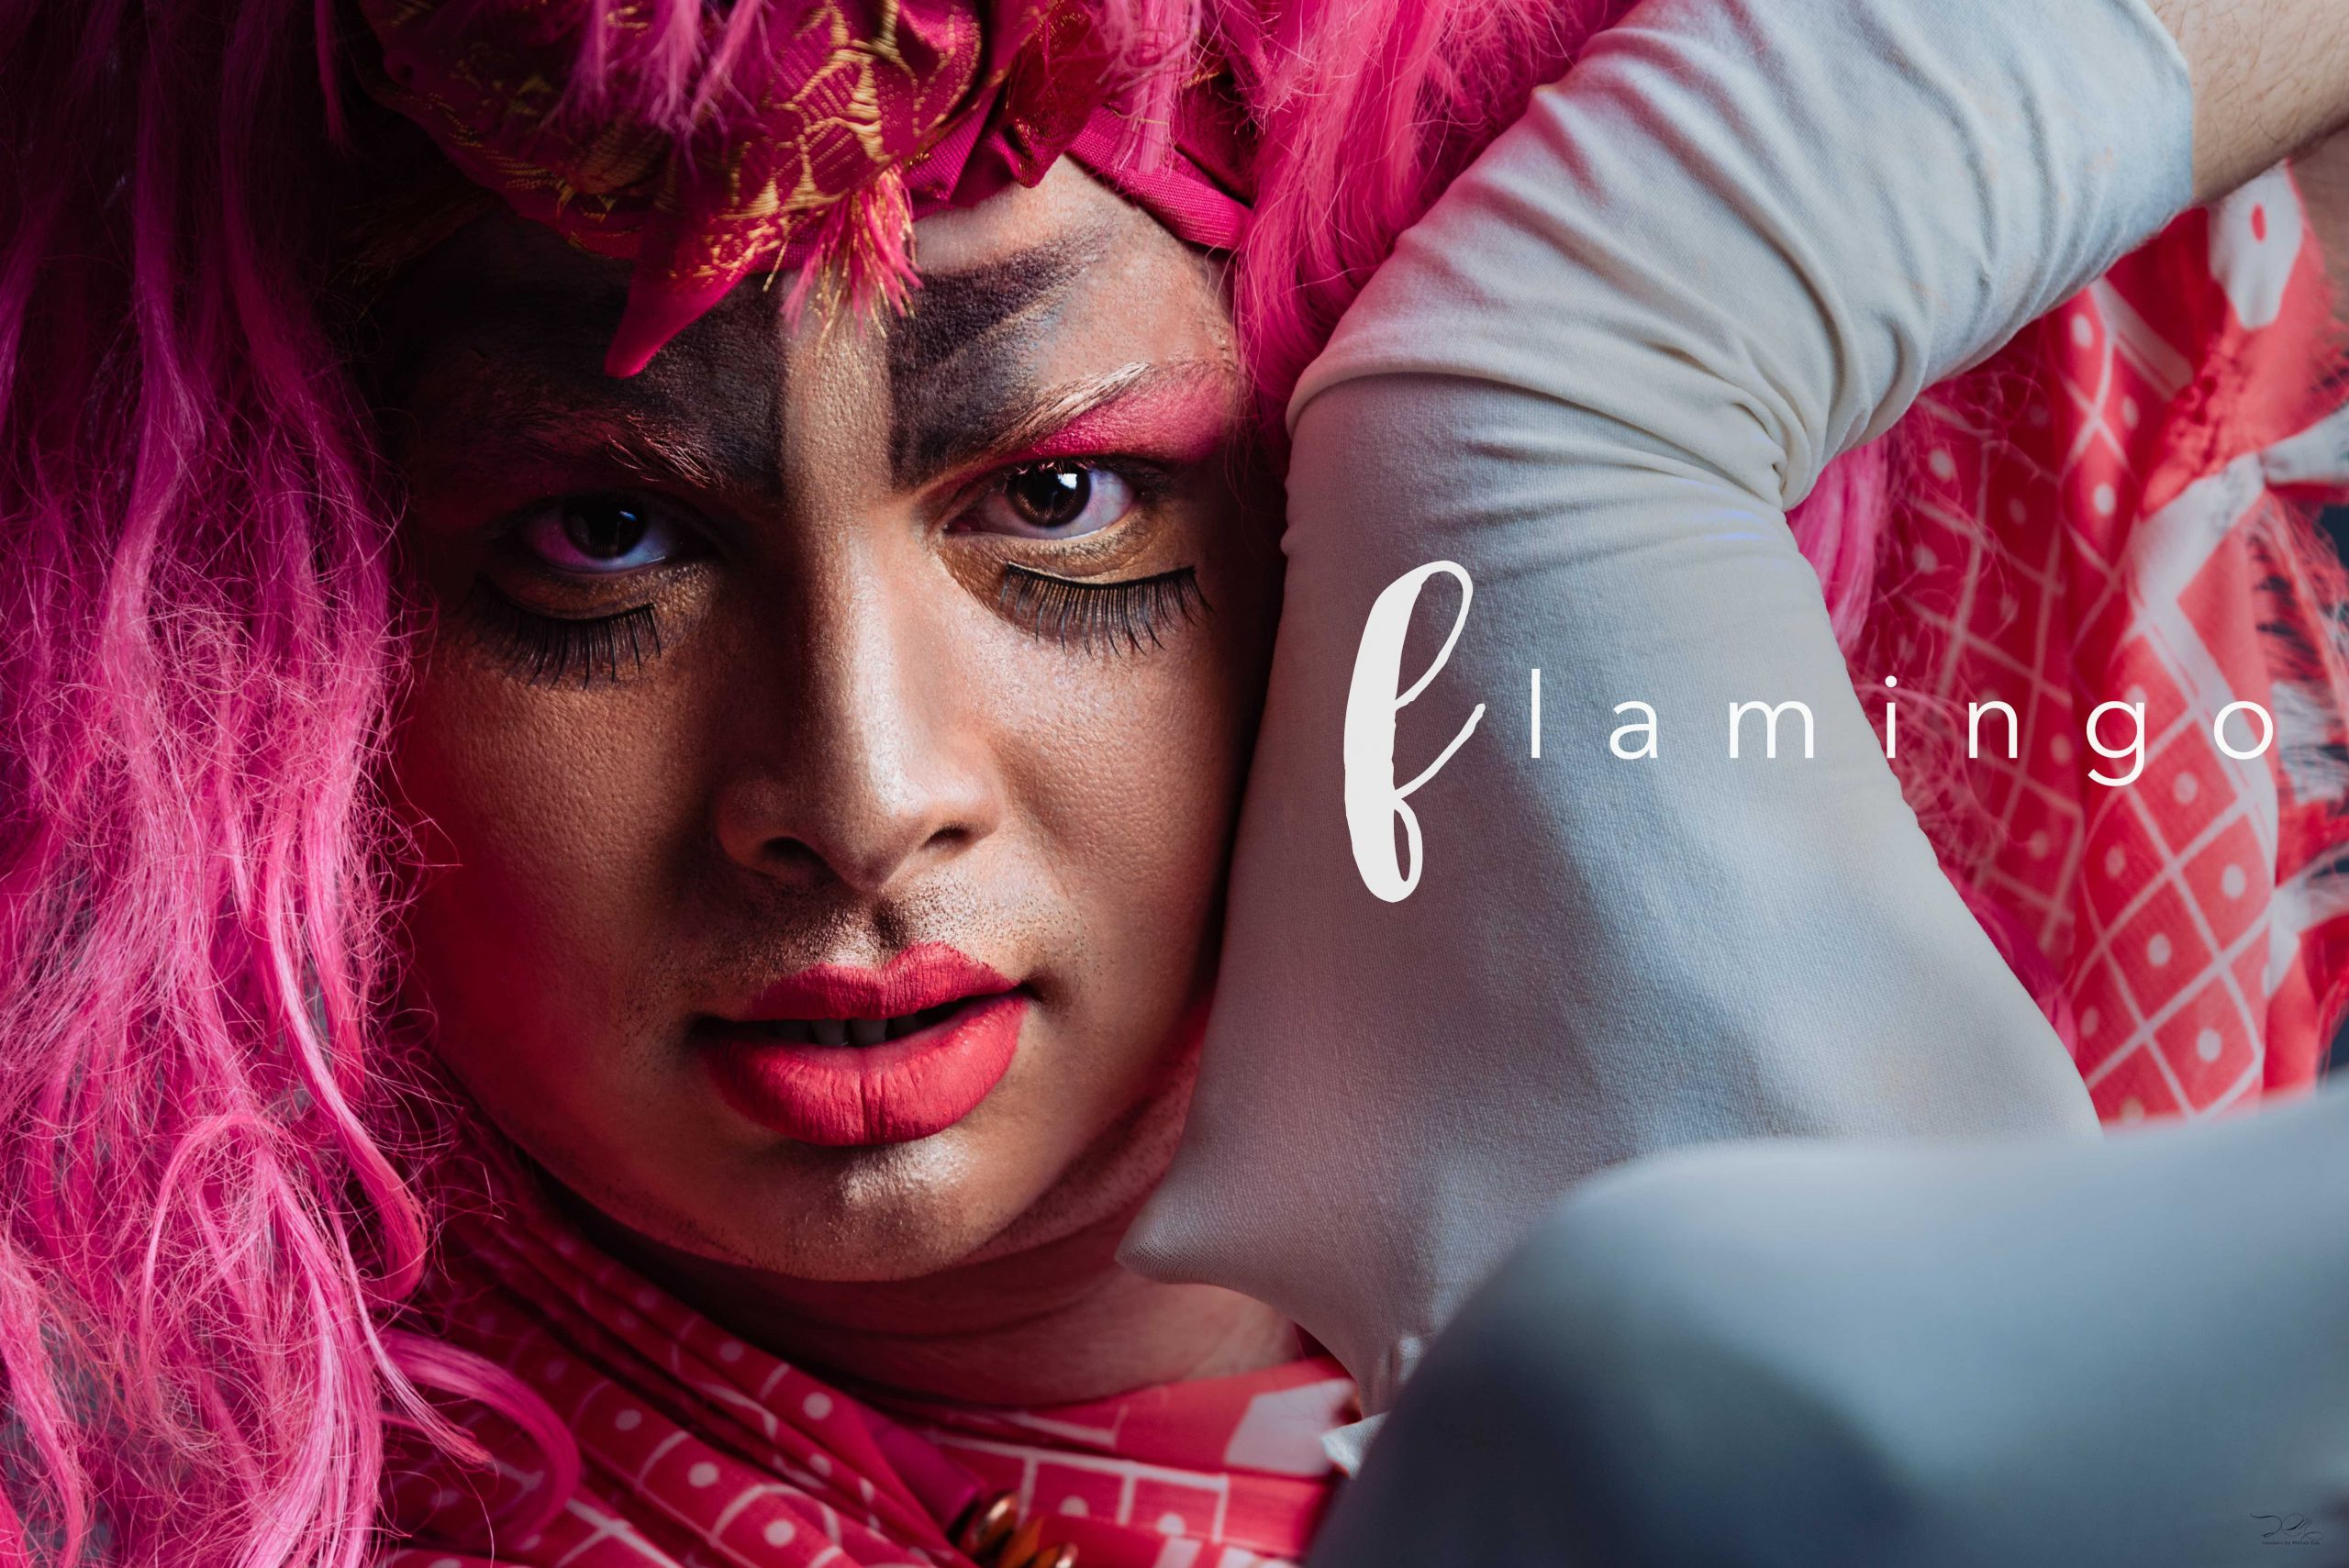 Pink Flamingo, A Photo Series To Create Awareness On Pomosexuality